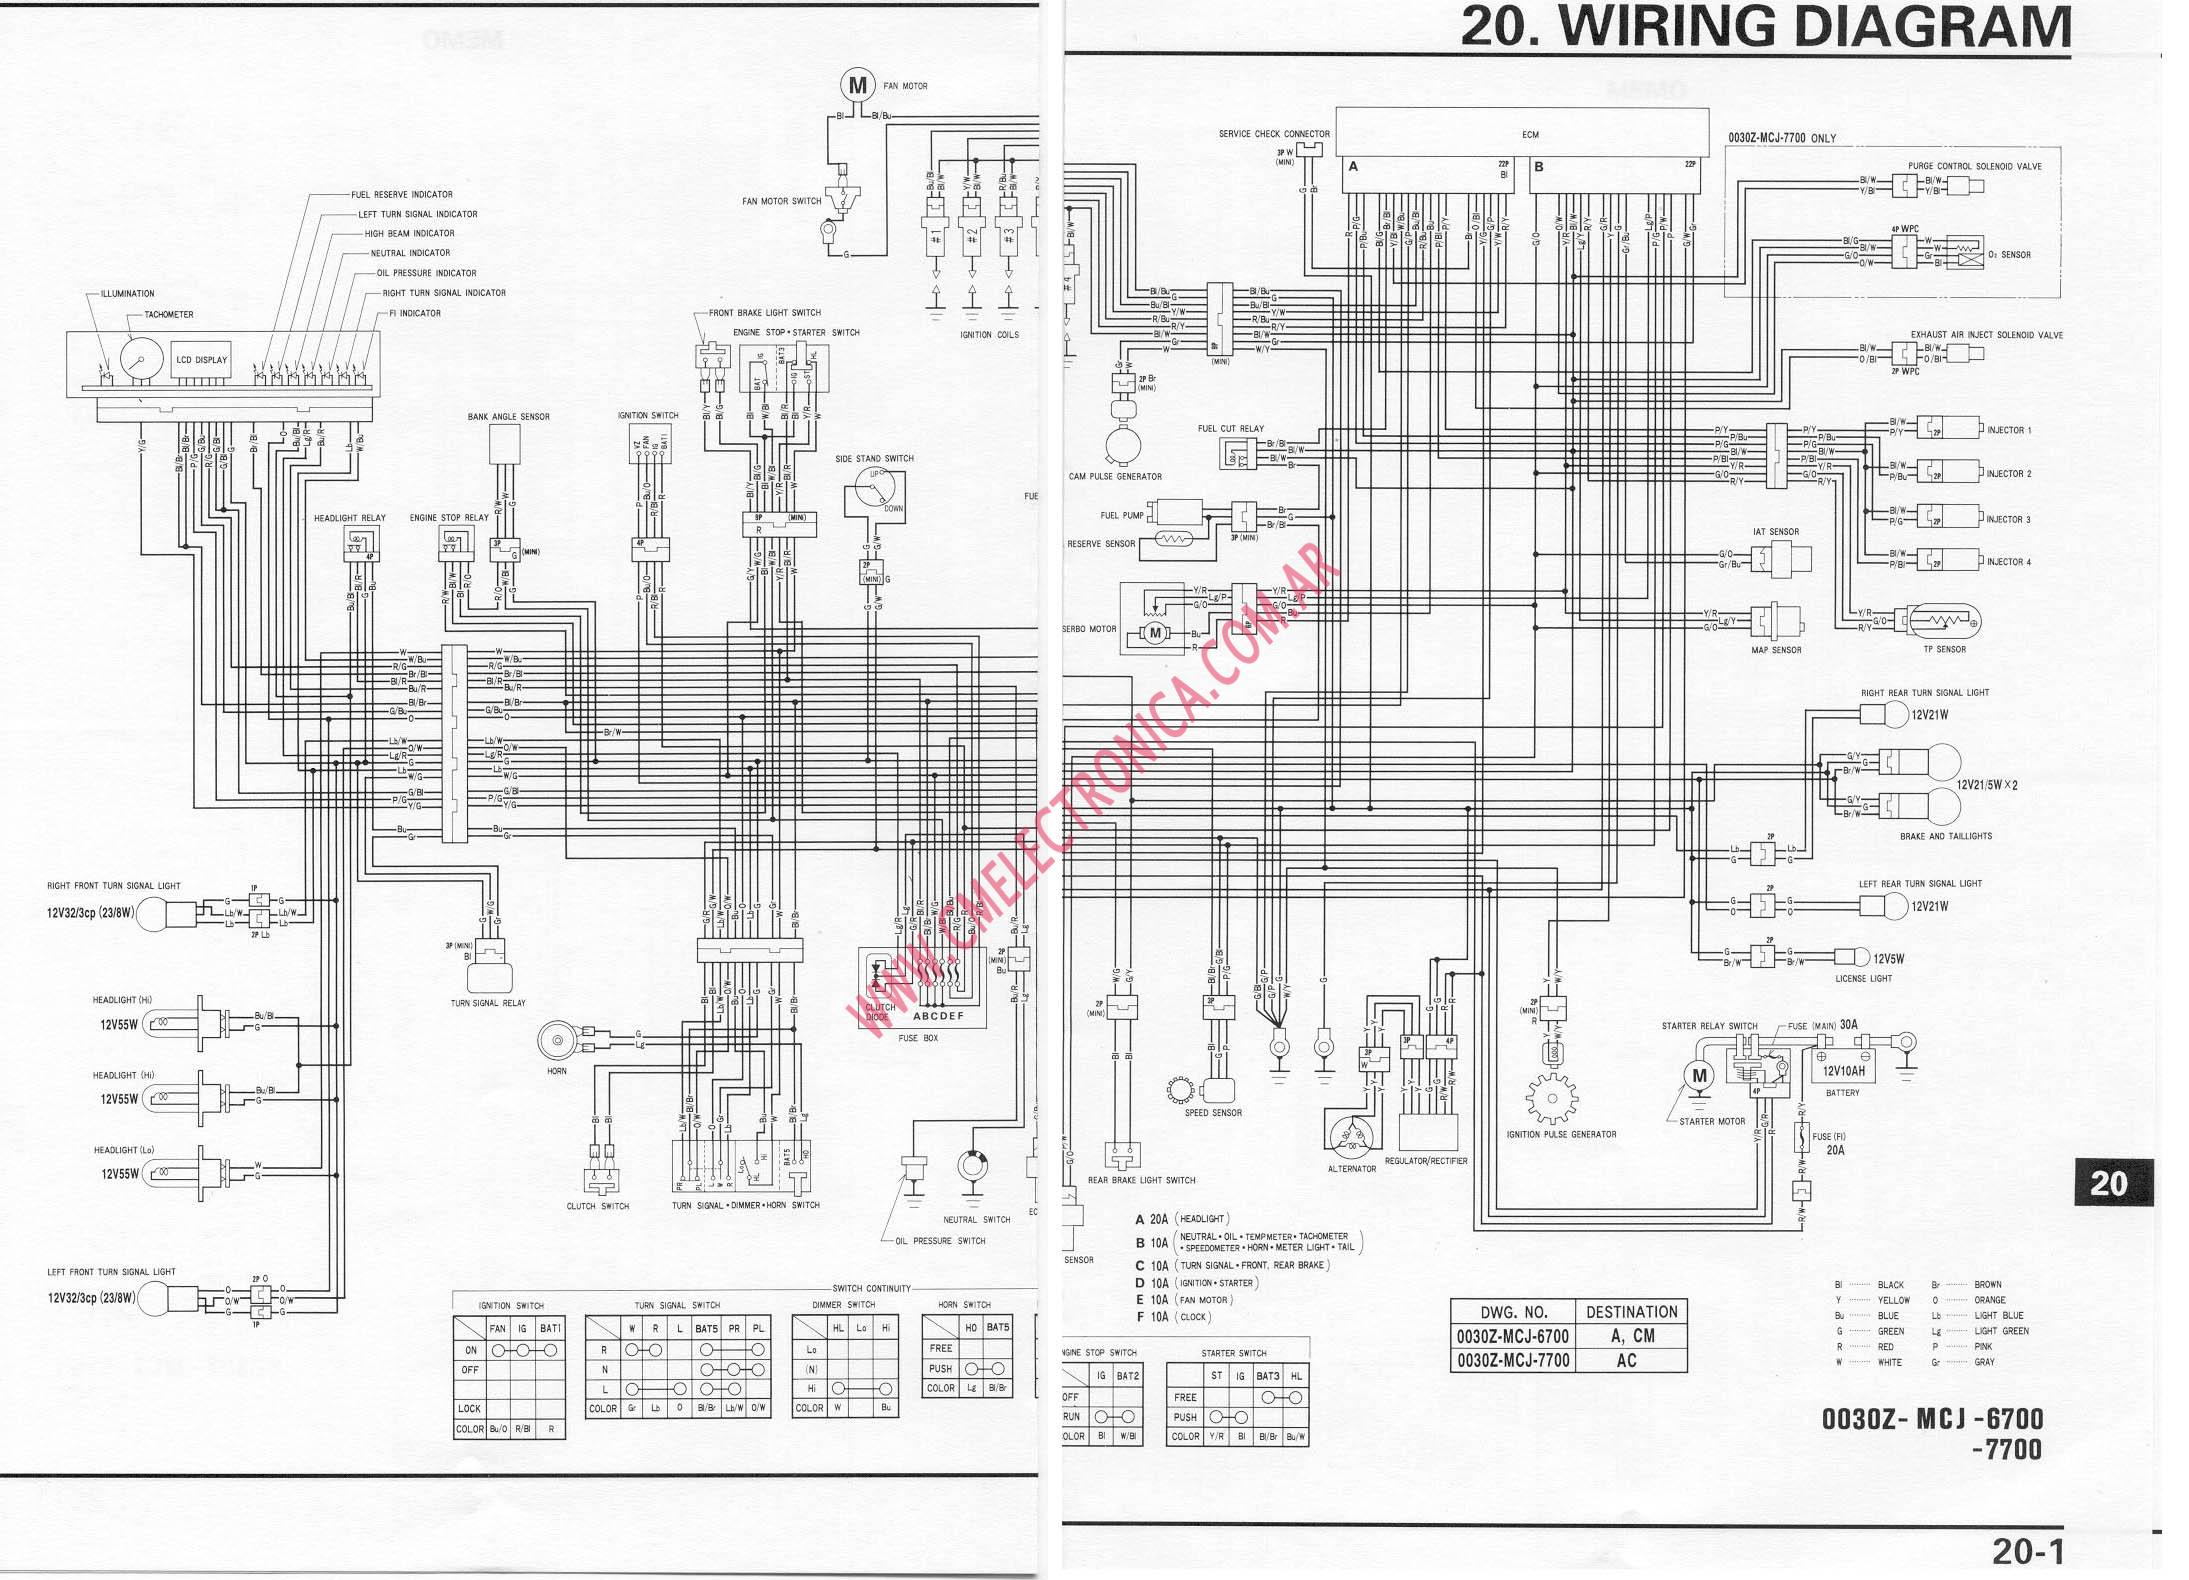 92 cbr900rr wiring diagram machine learning  honda cbr900rr ignition system circuit